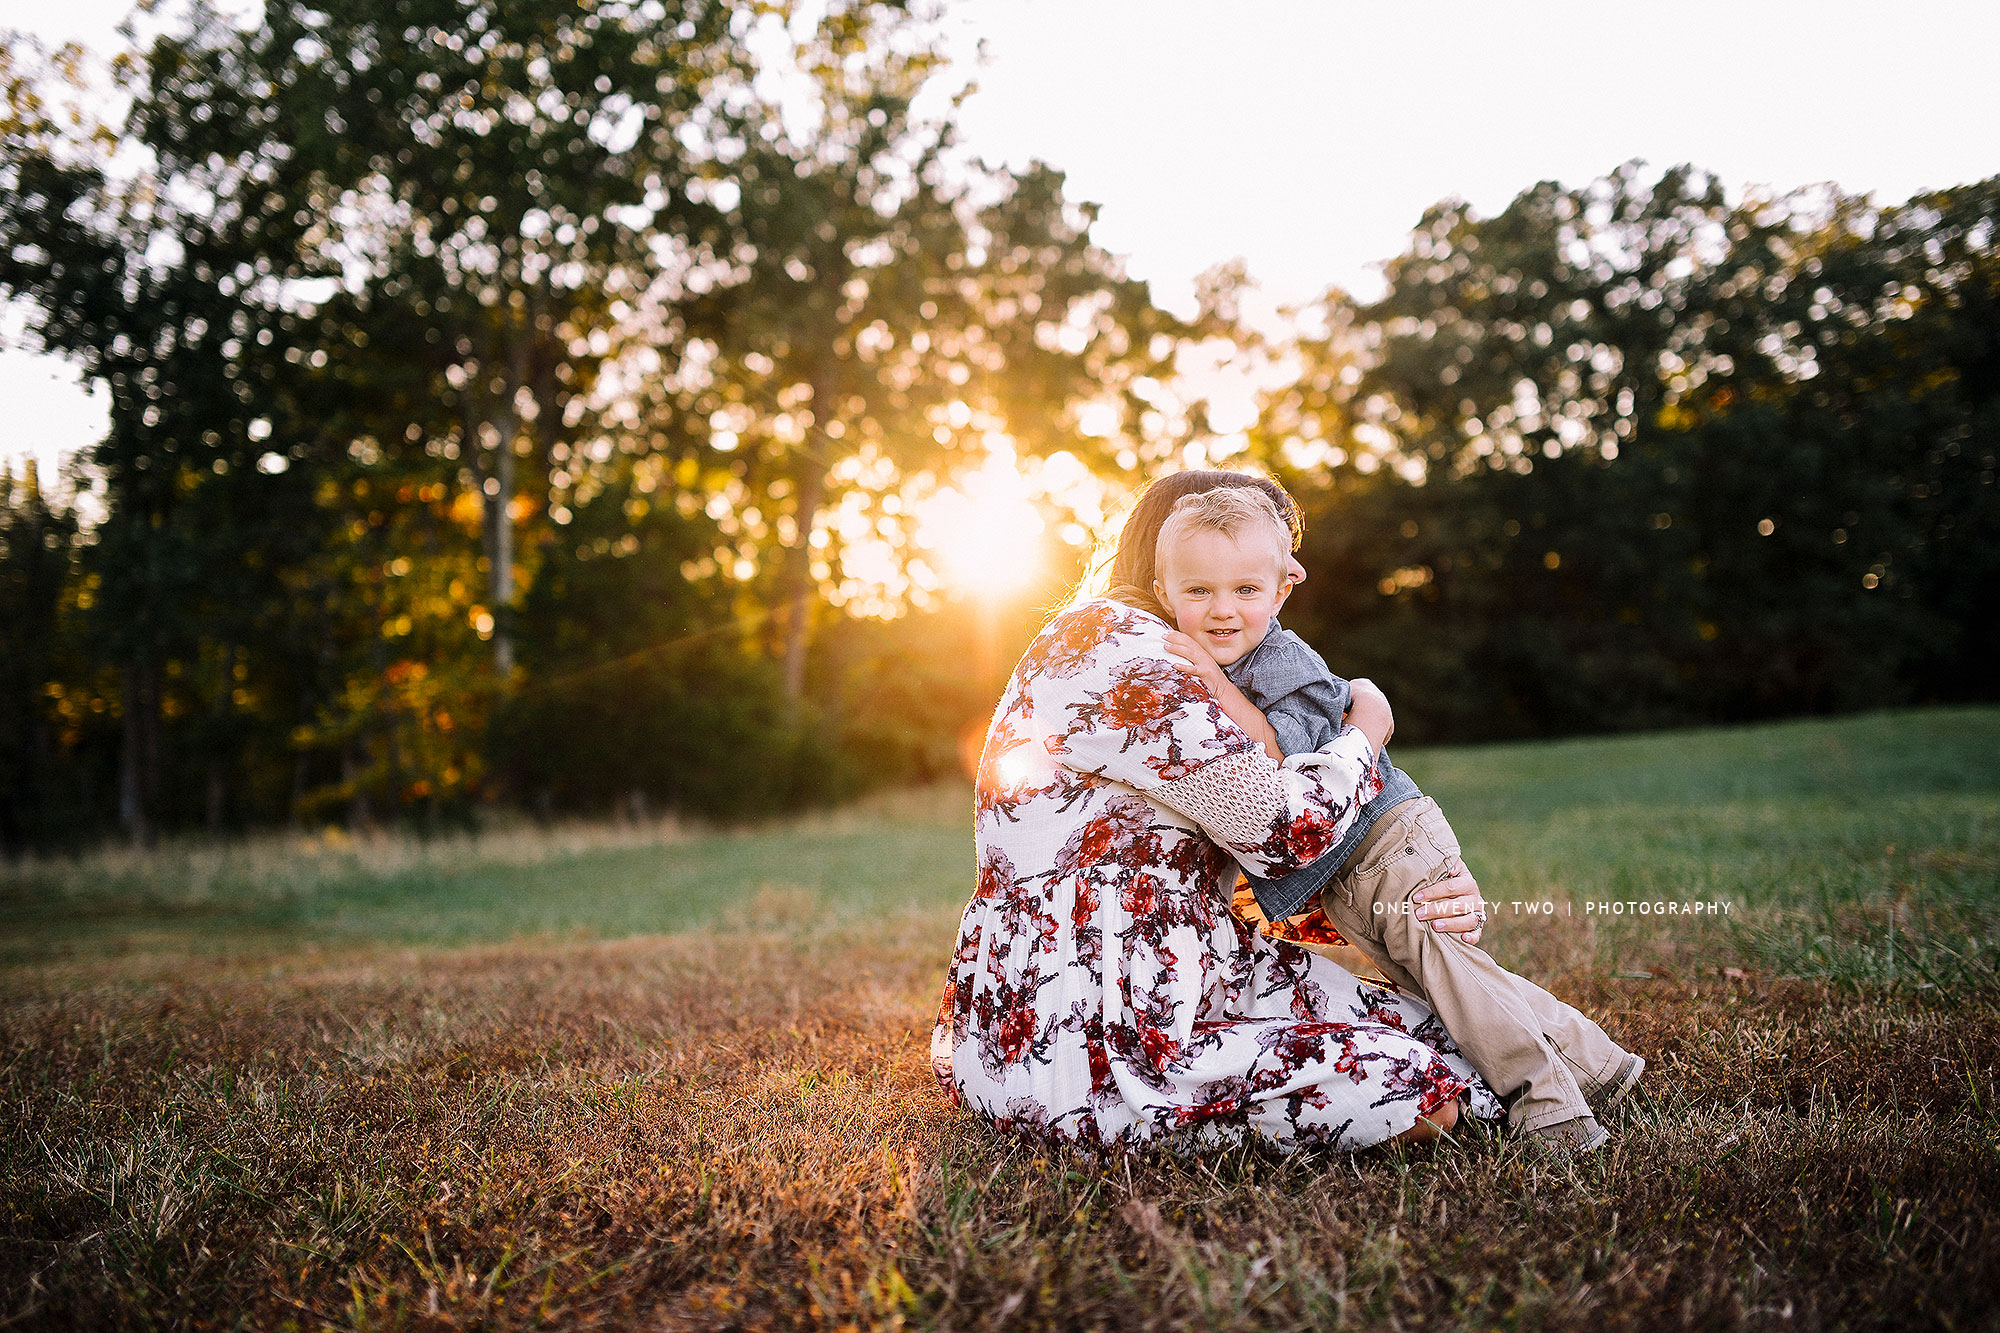 ladue-missouri-mom-hugging-toddler-at-sunset-one-twenty-two-photography.jpg